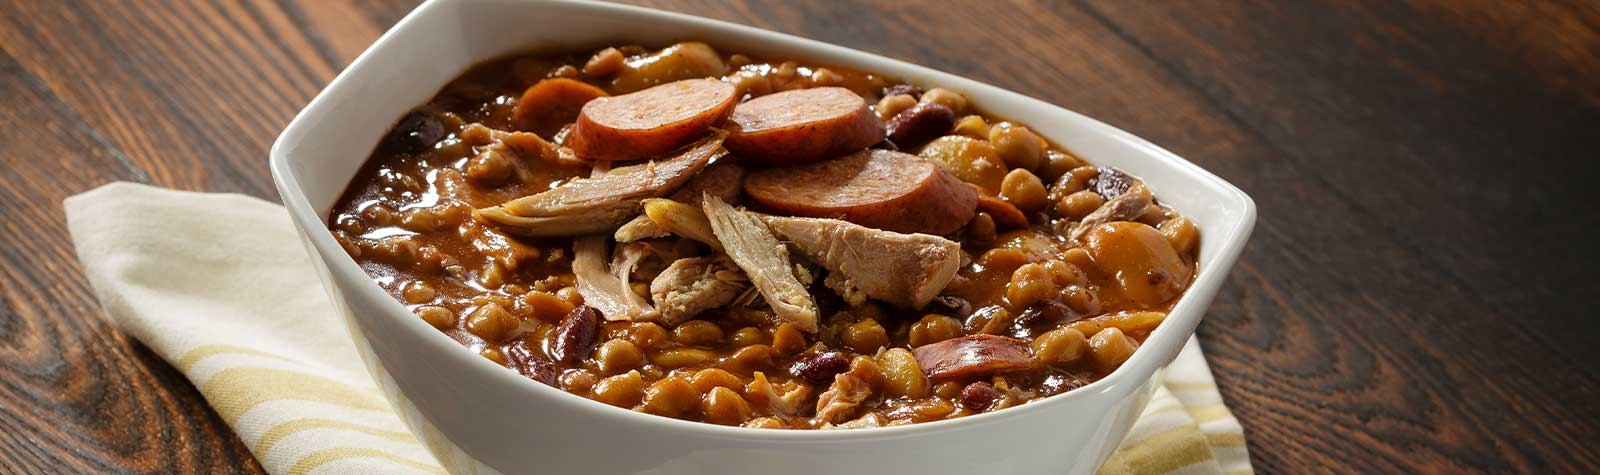 Baked Beans with Smoked Turkey & Sausage